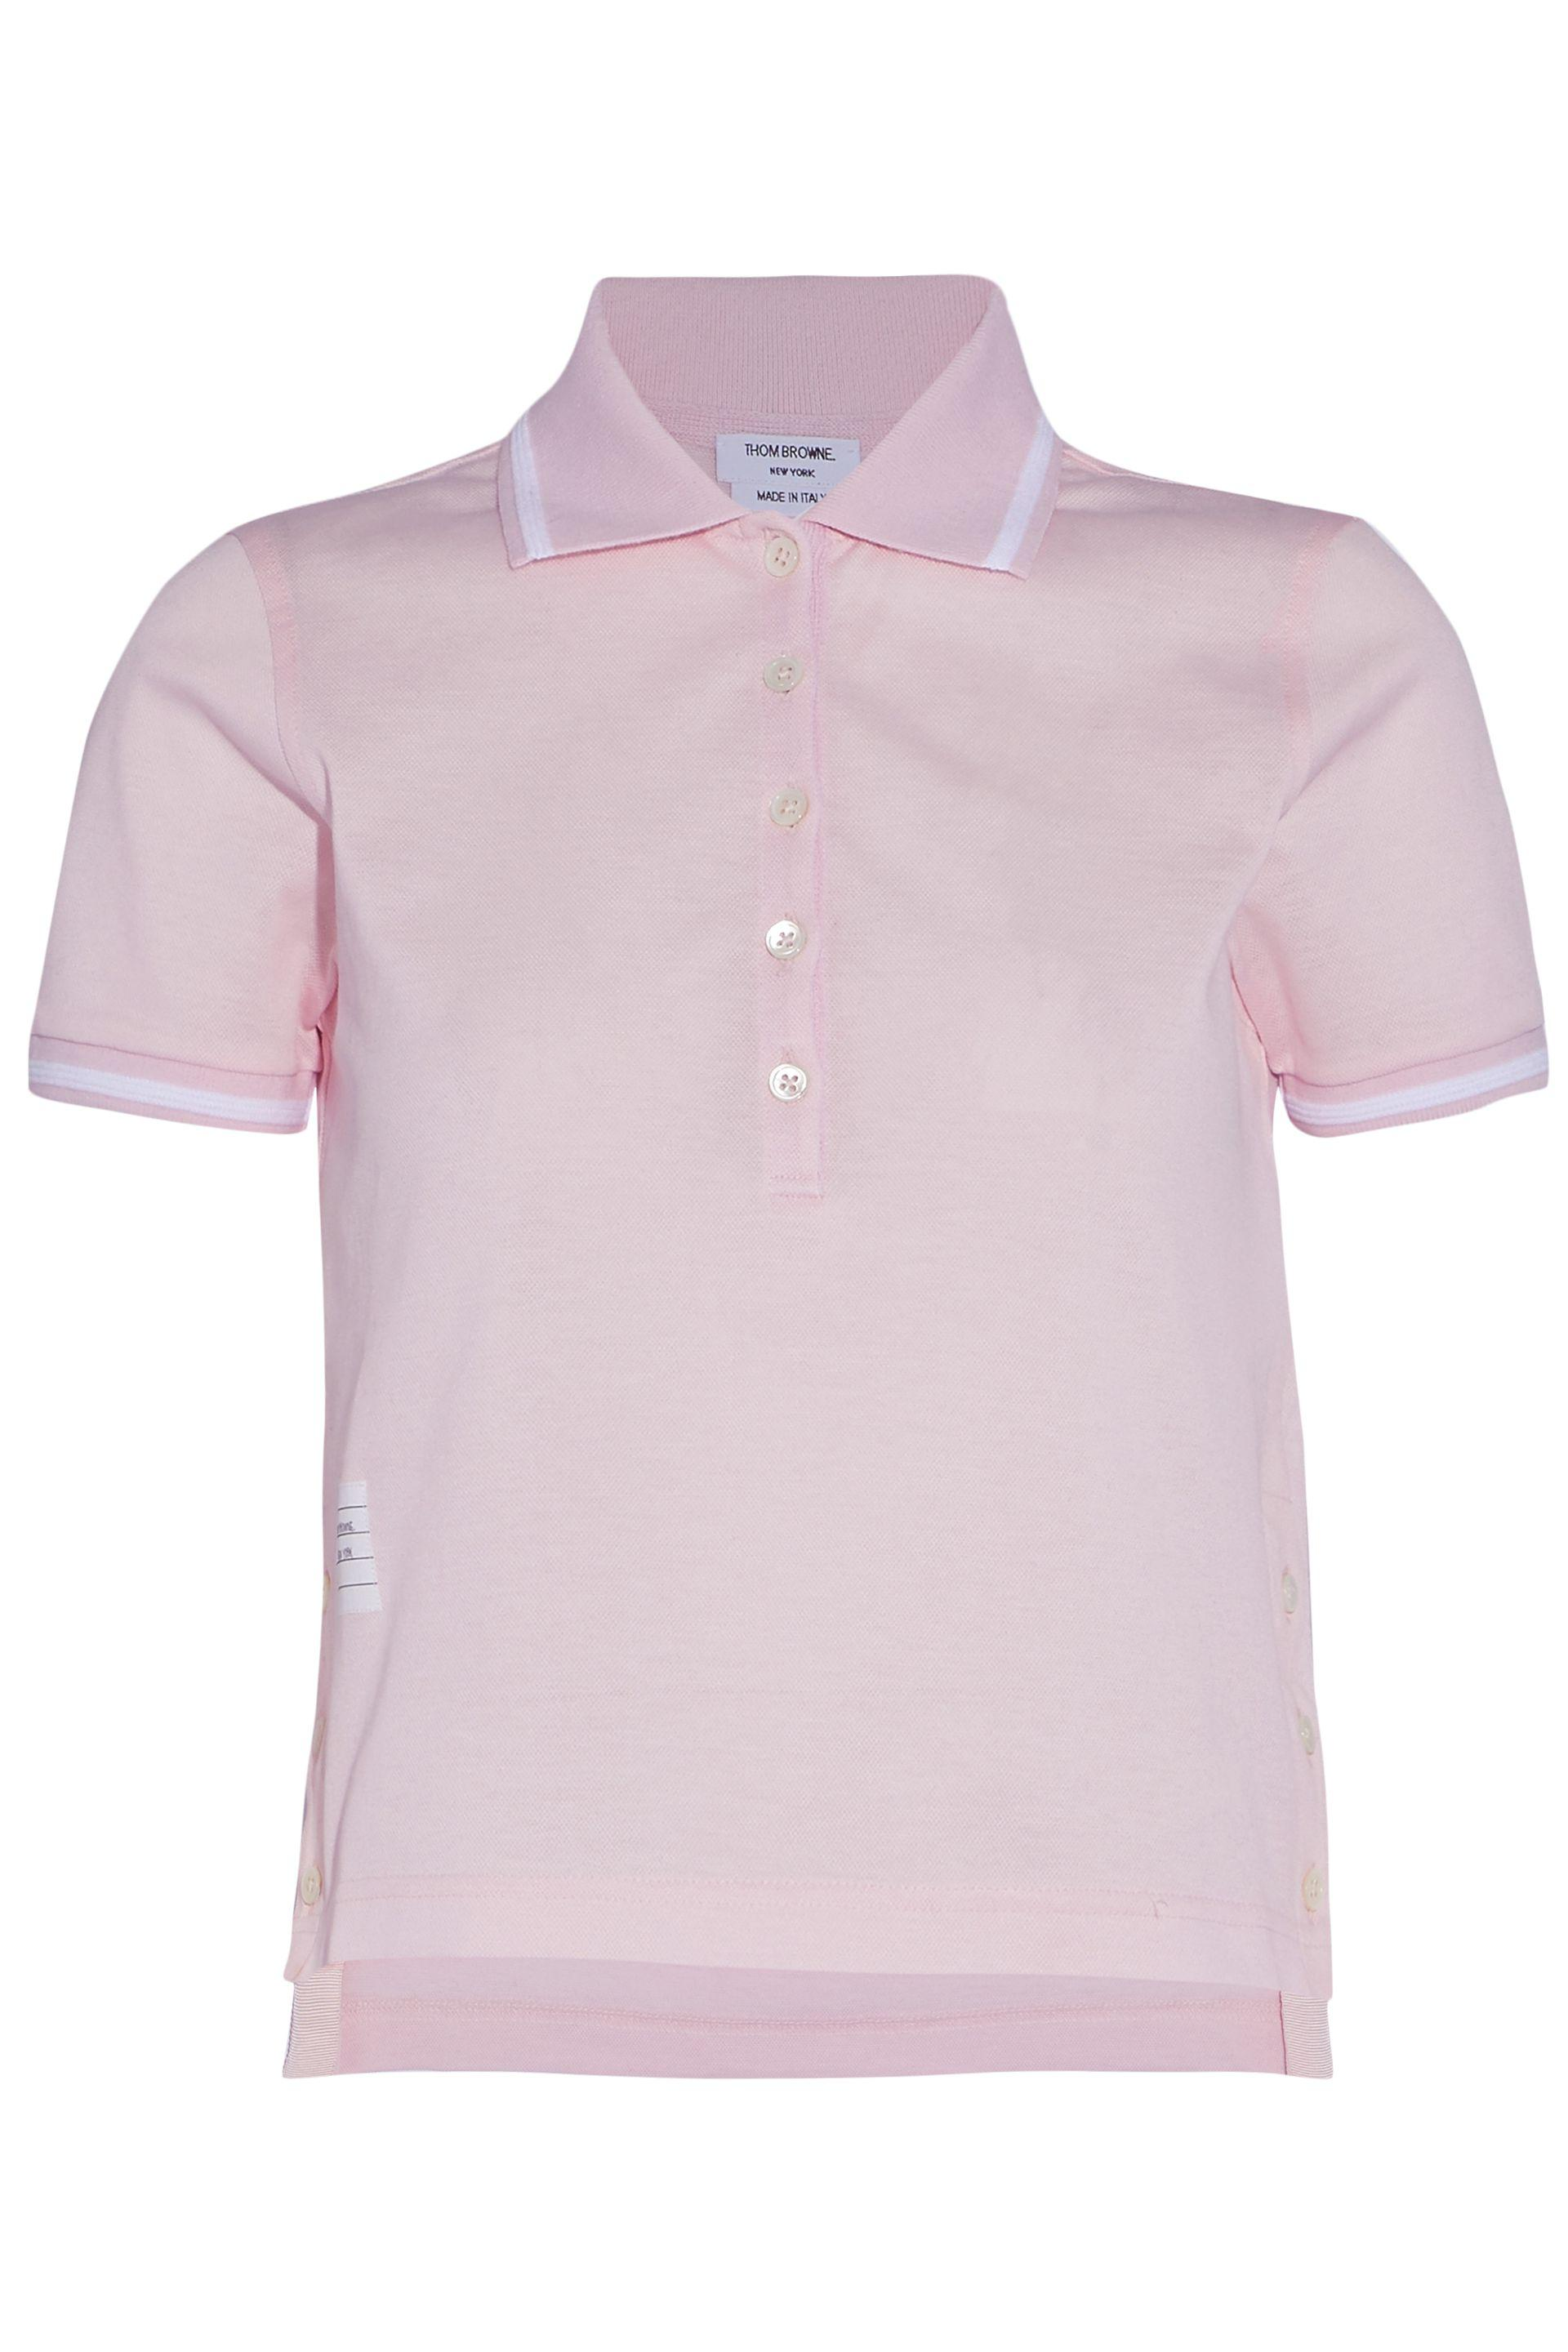 Outlet Top Quality Clearance Extremely Striped Cotton-piqué Polo Shirt - Pastel pink Thom Browne Cheap Real Eastbay ql4i0PAon